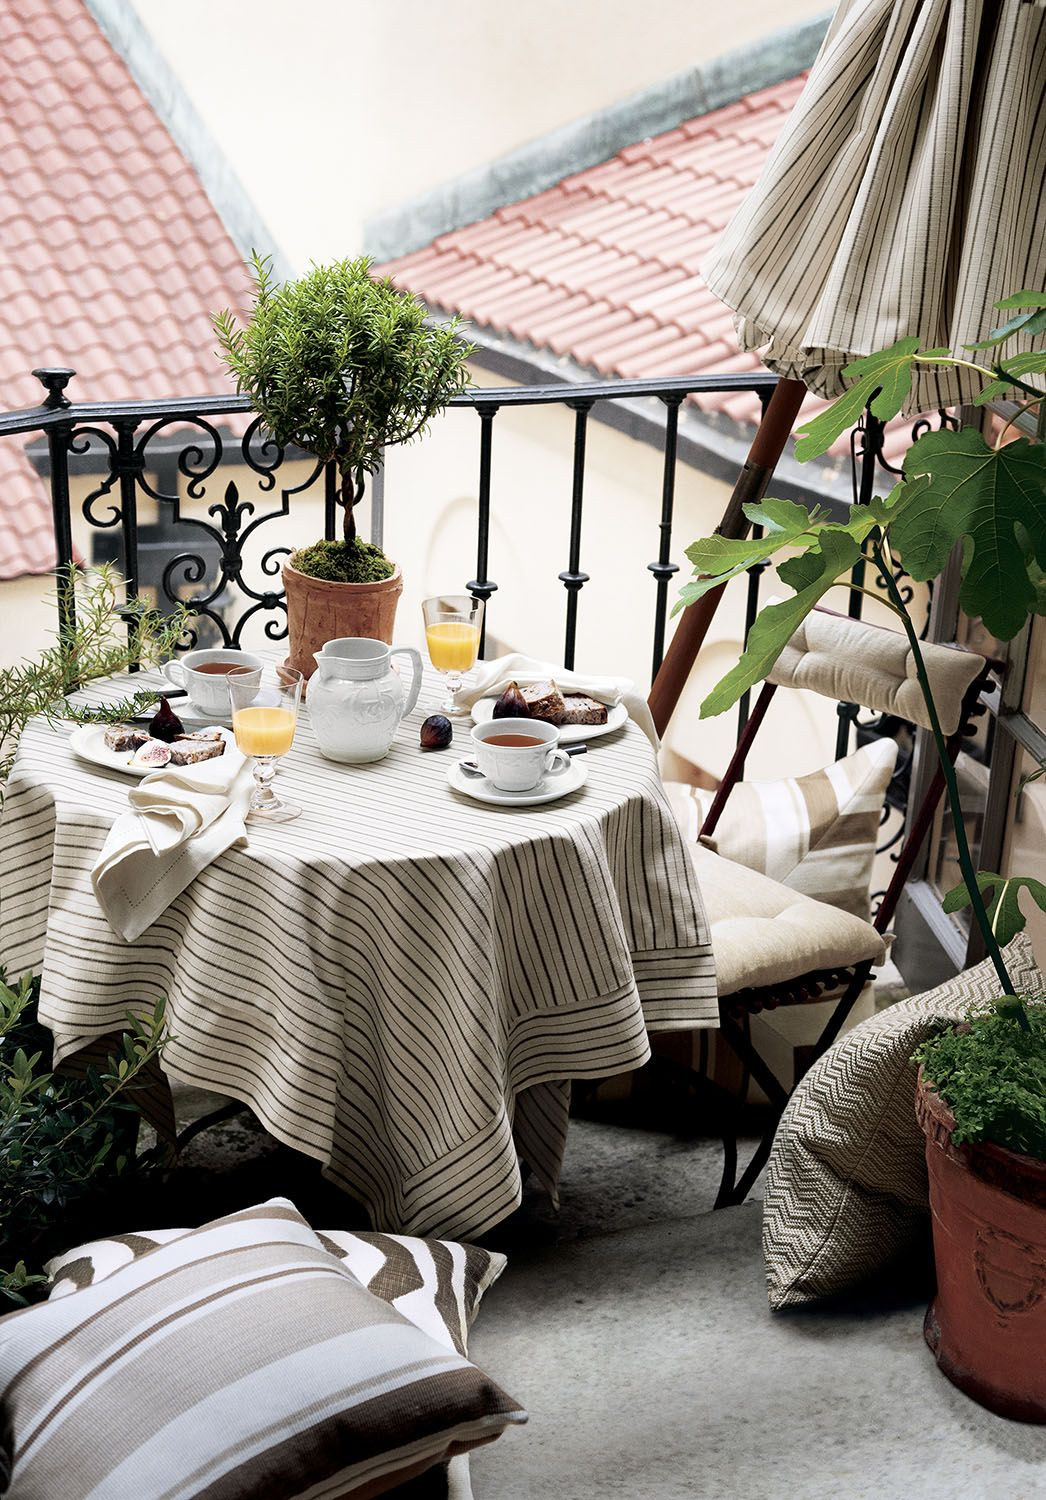 Terrace Dining Made Even Sweeter With Ralph Lauren Home Grlands Indoor Outdoor Fabric Collection